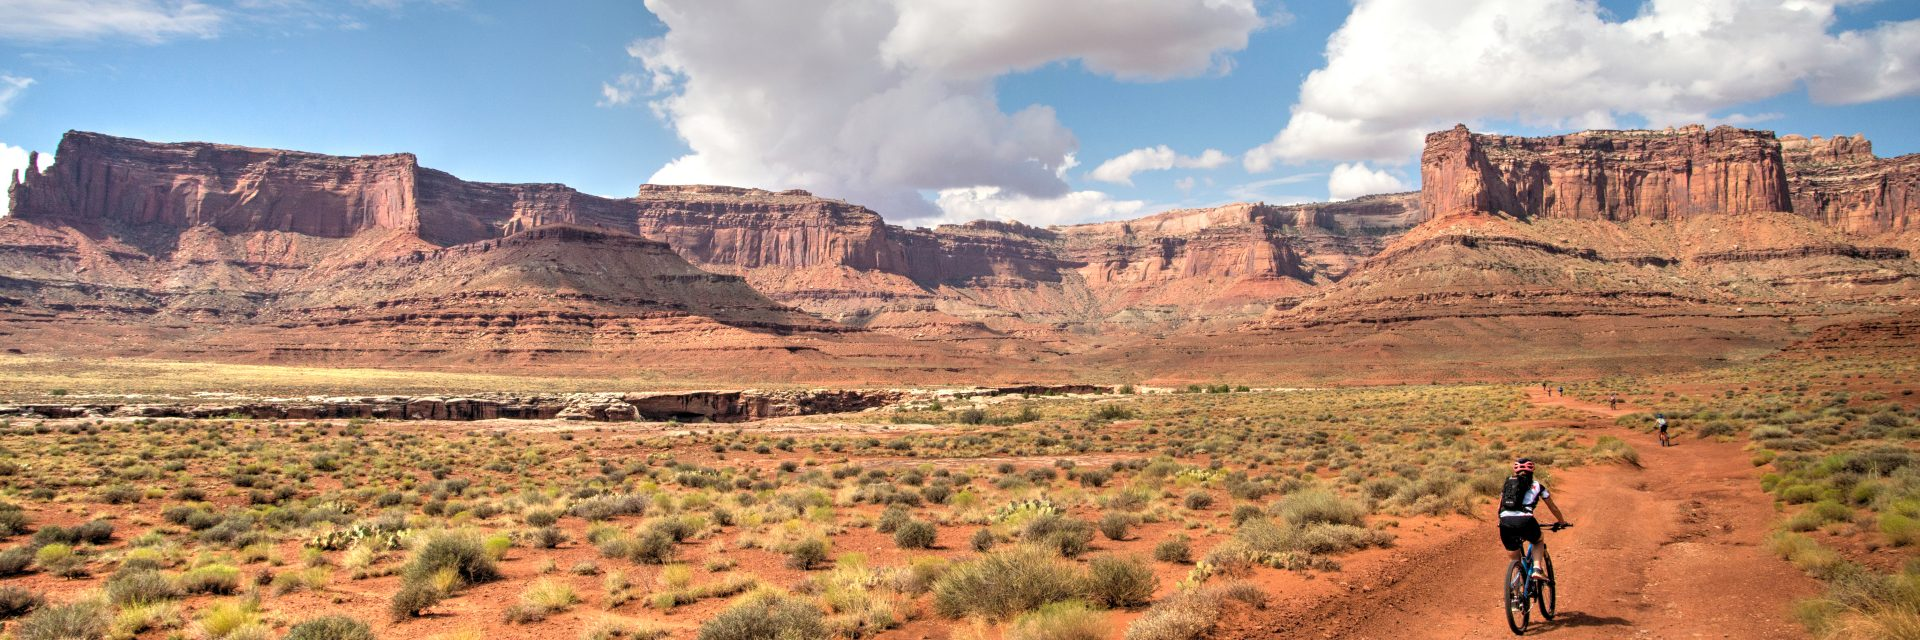 Canyonlands National Park - White Rim Trail